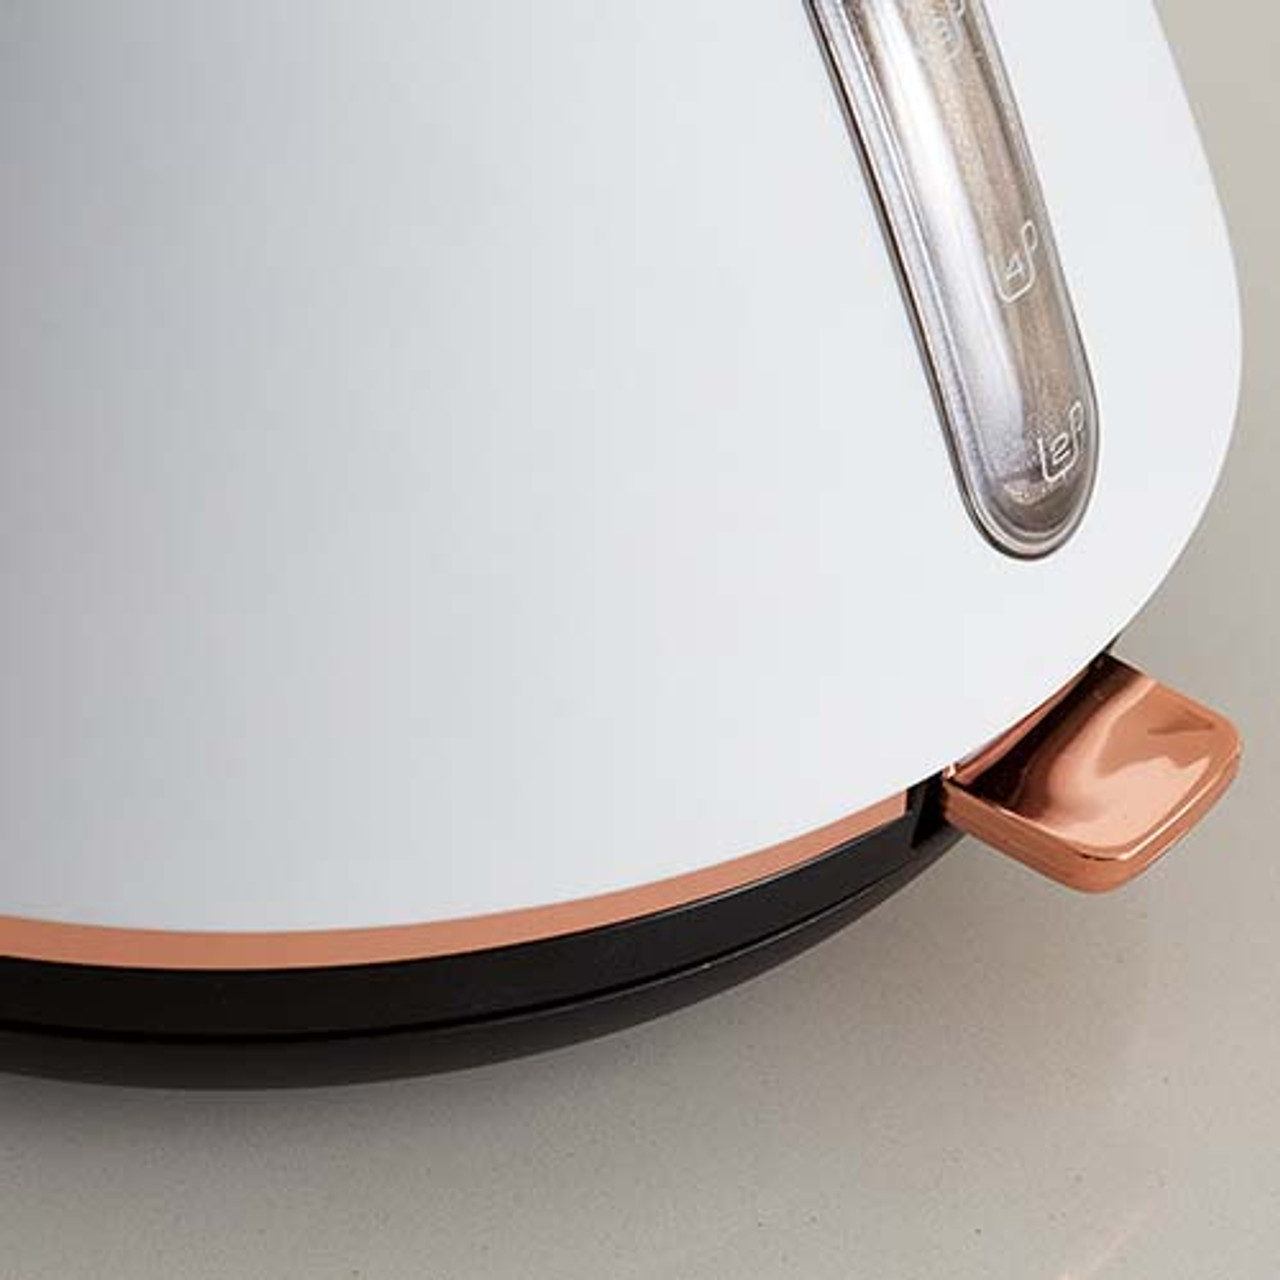 Morphy Richards 102108 Accents Rose 1.5L 2200W Kettle - Gold White